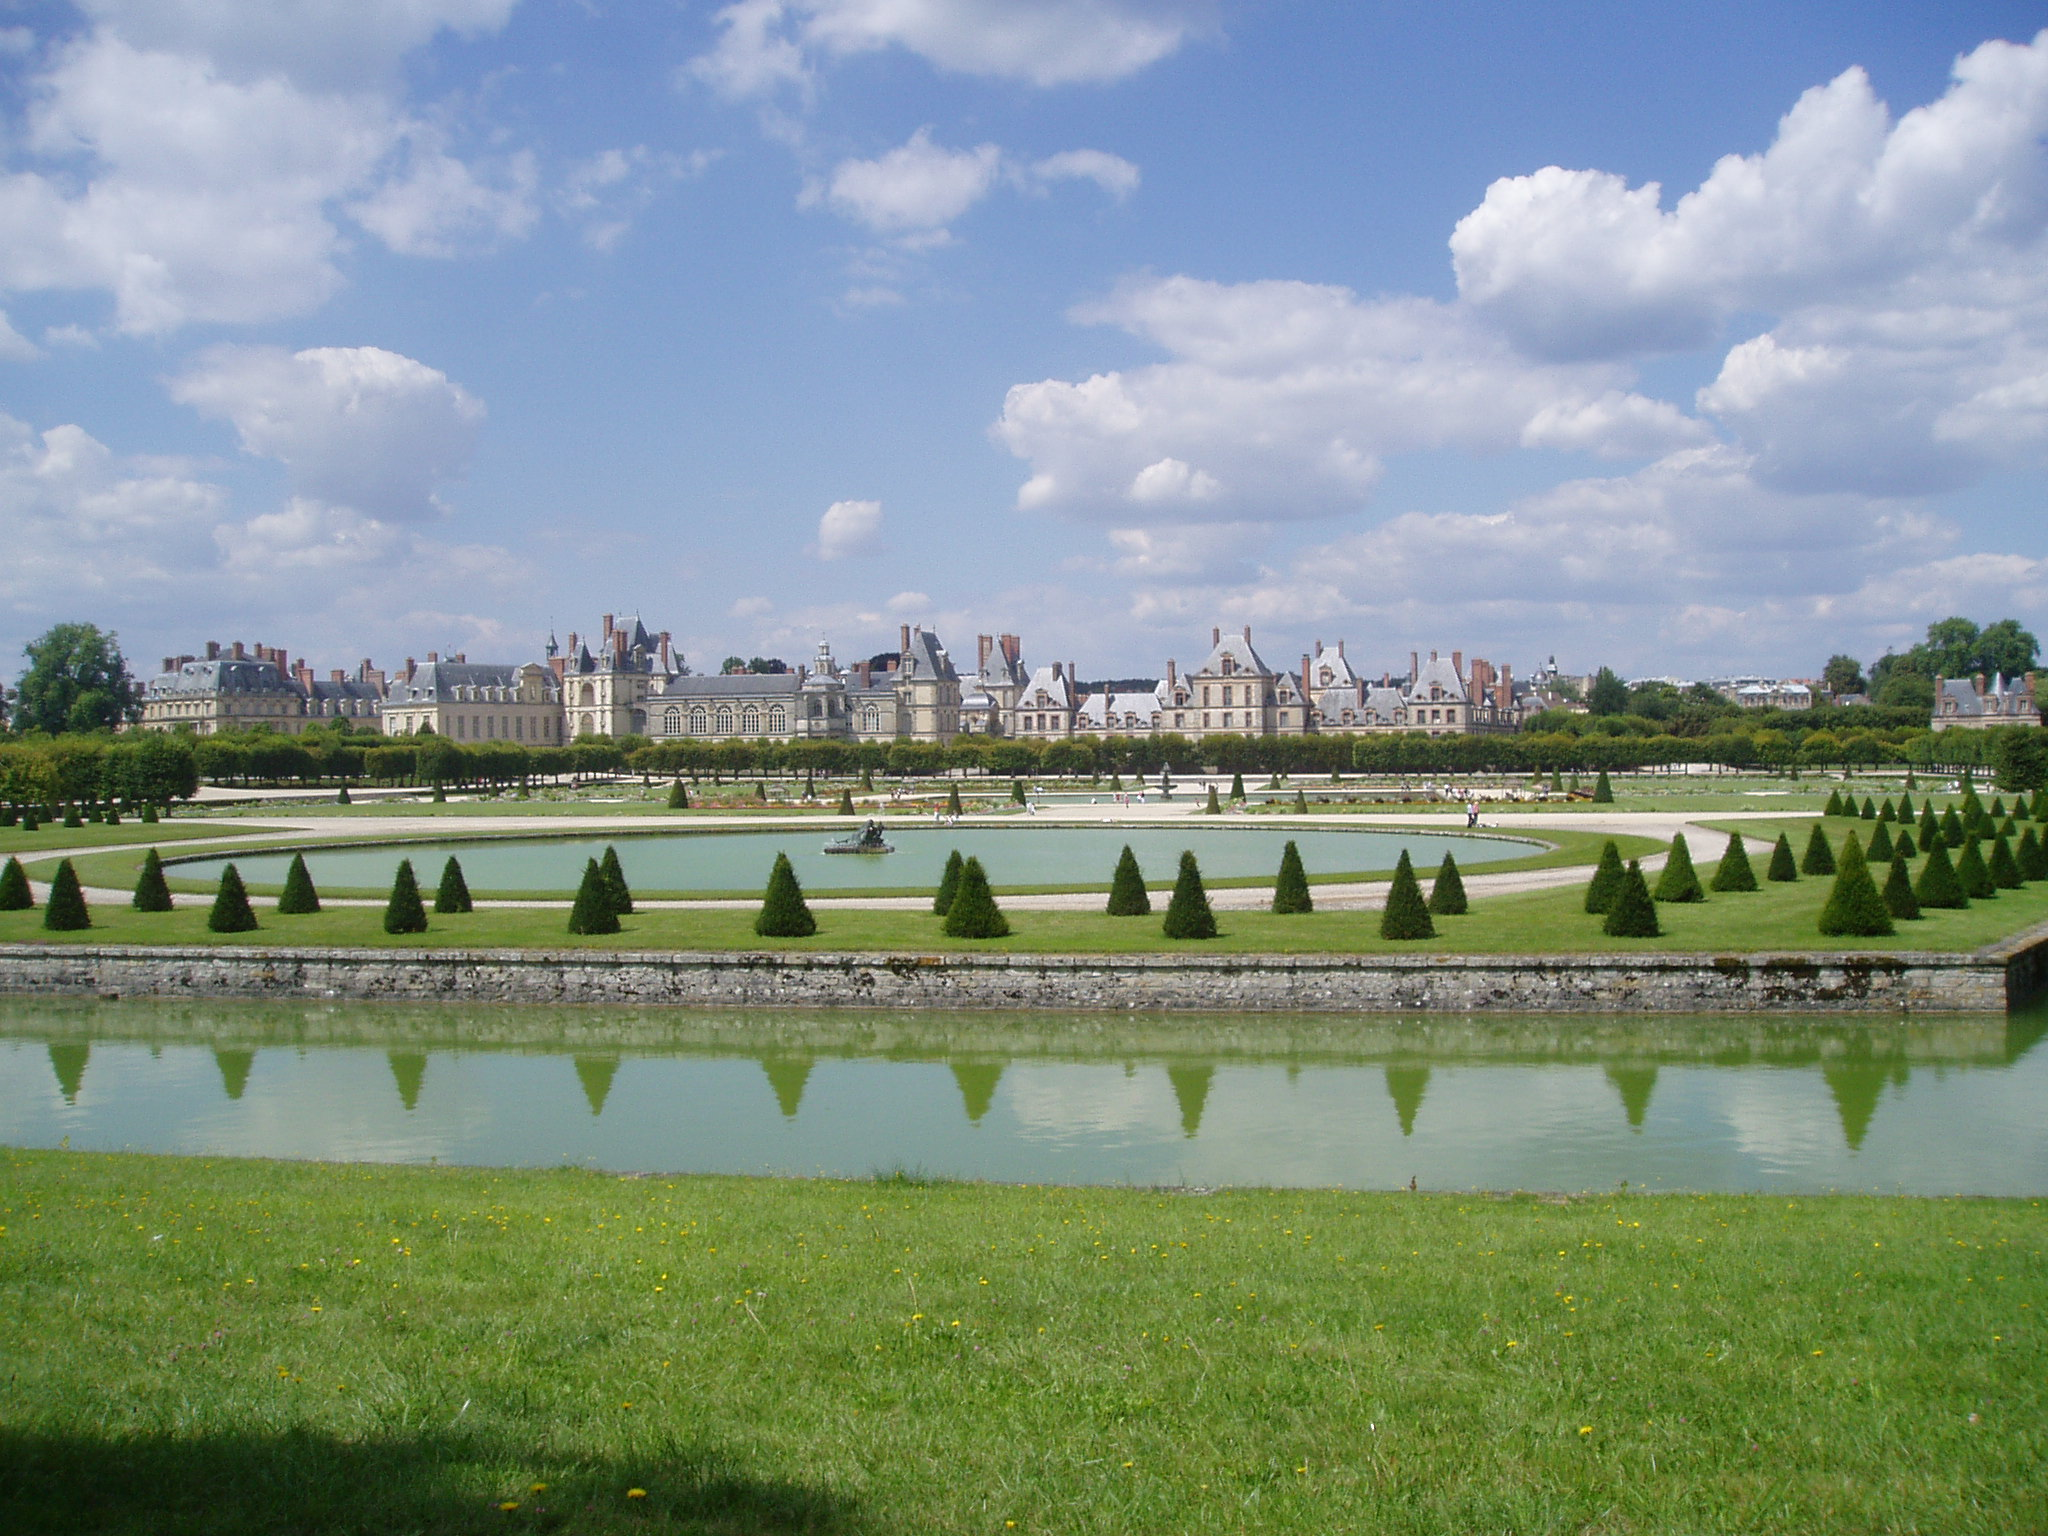 Huge and beautiful gardens outside the castle.